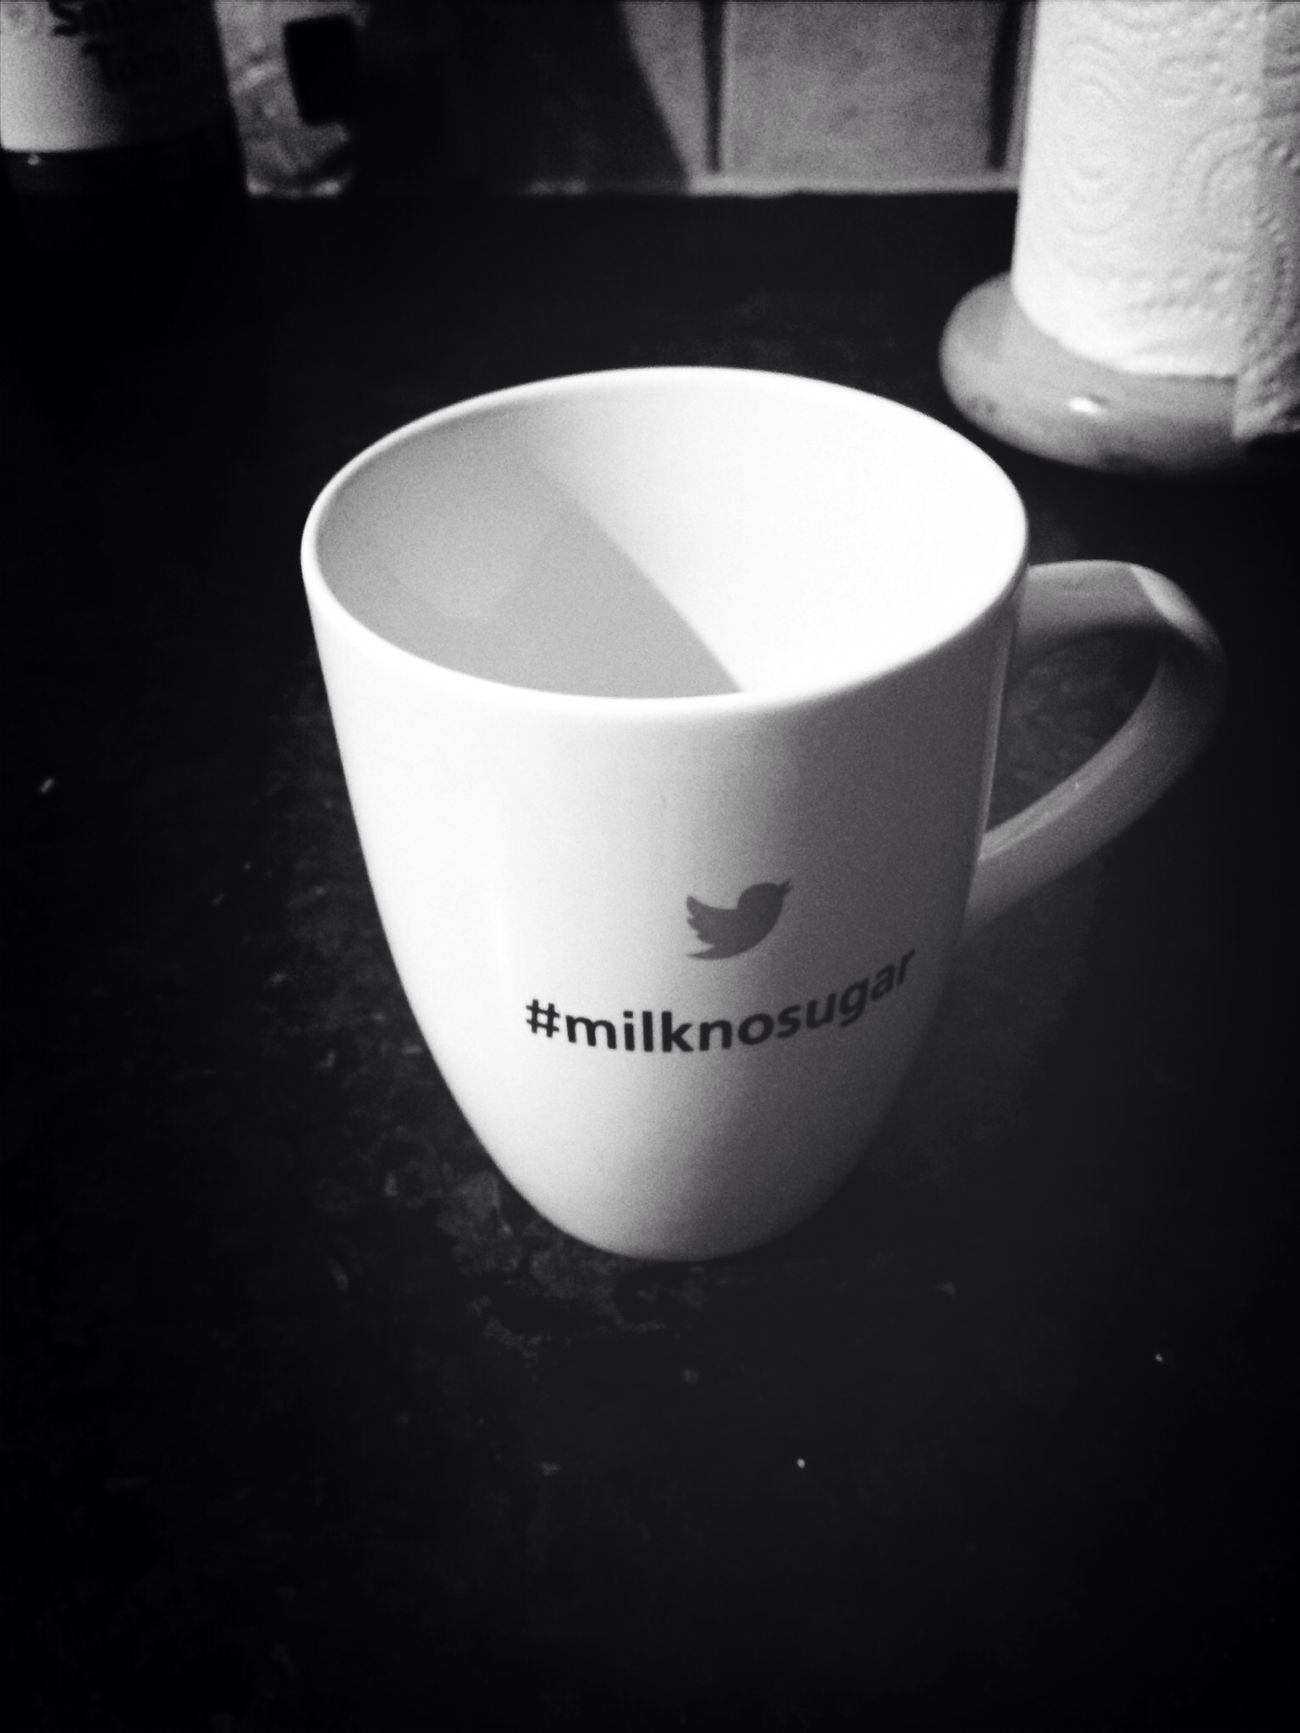 Saucy new mug, courtesy of @kimdarling! Milknosugar